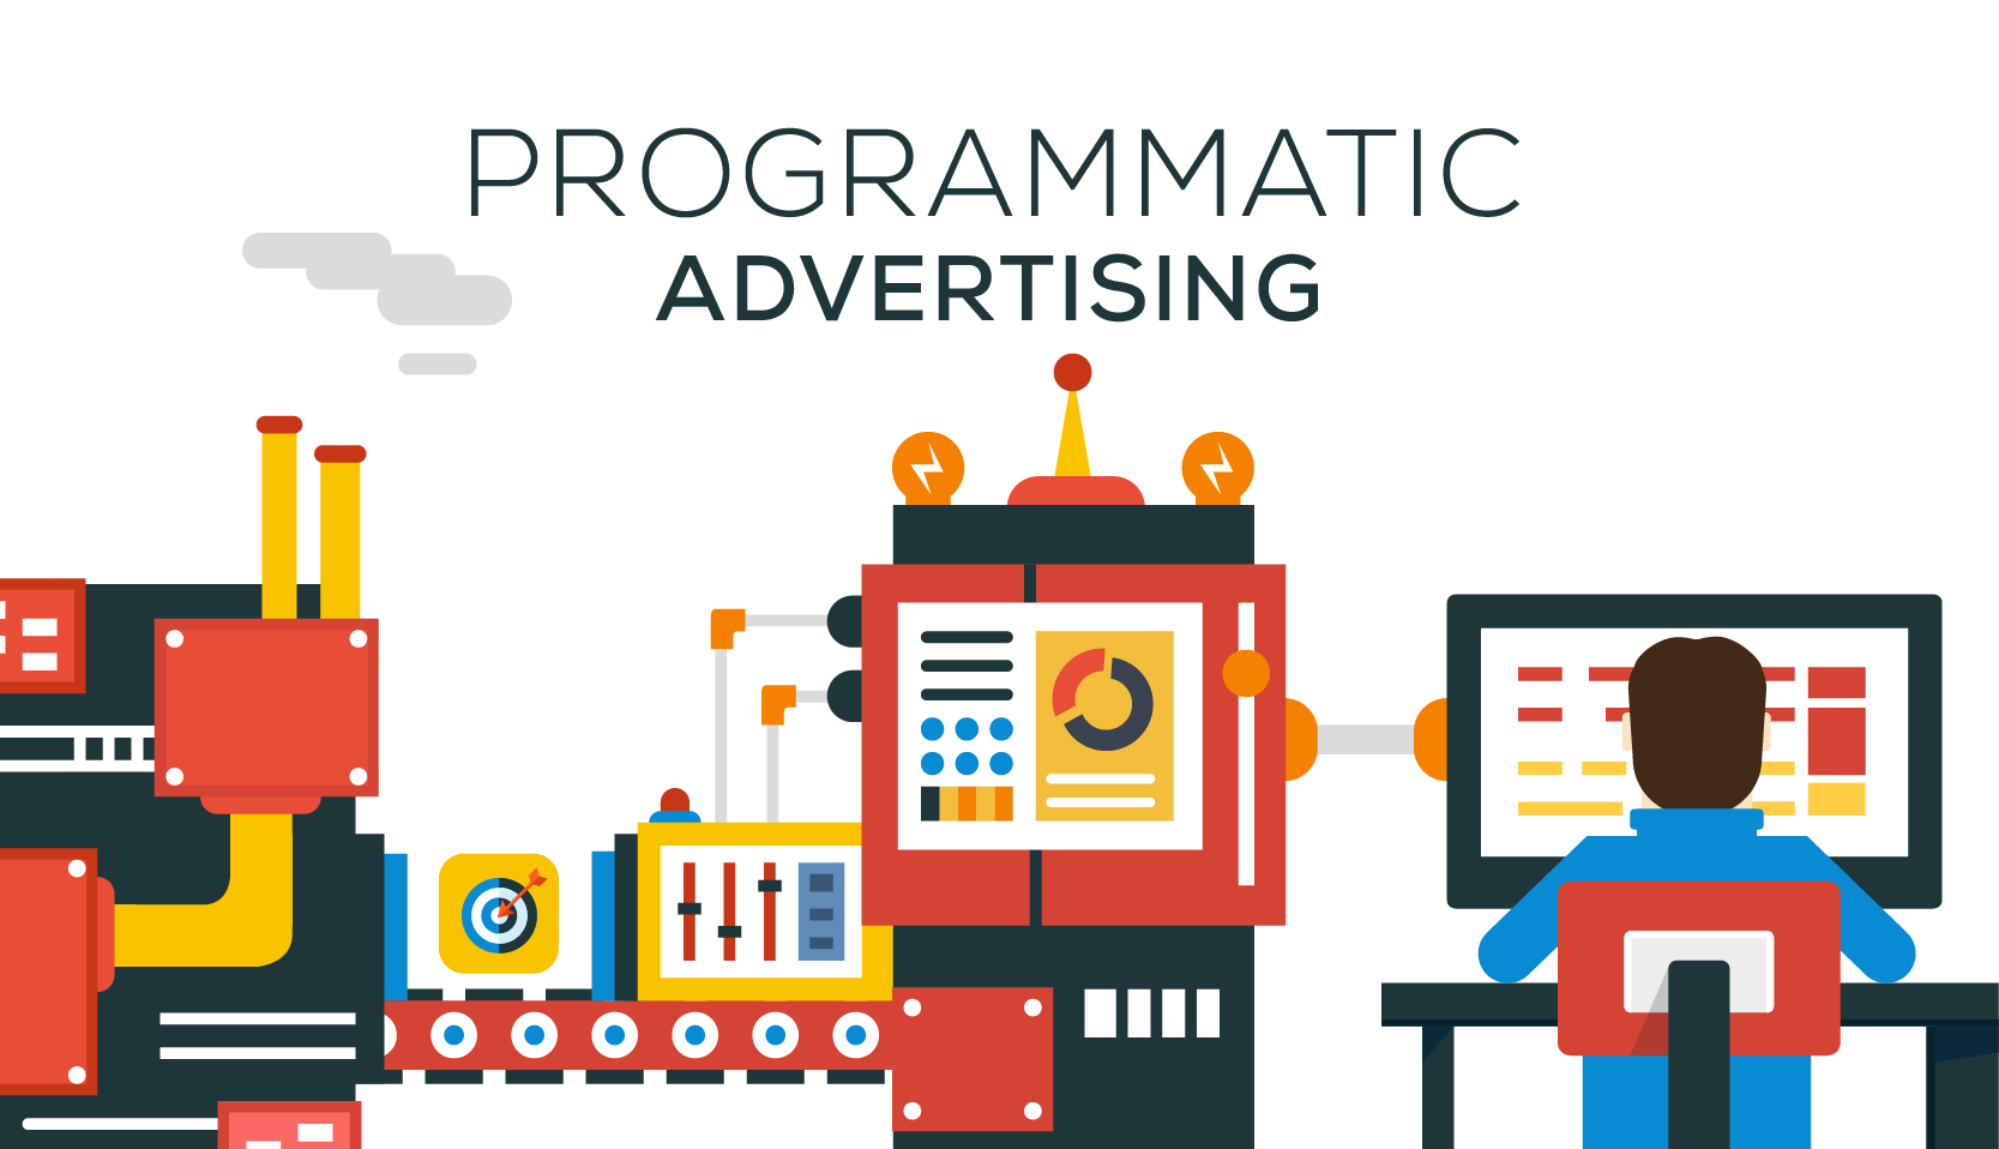 advantages programmatic advertising